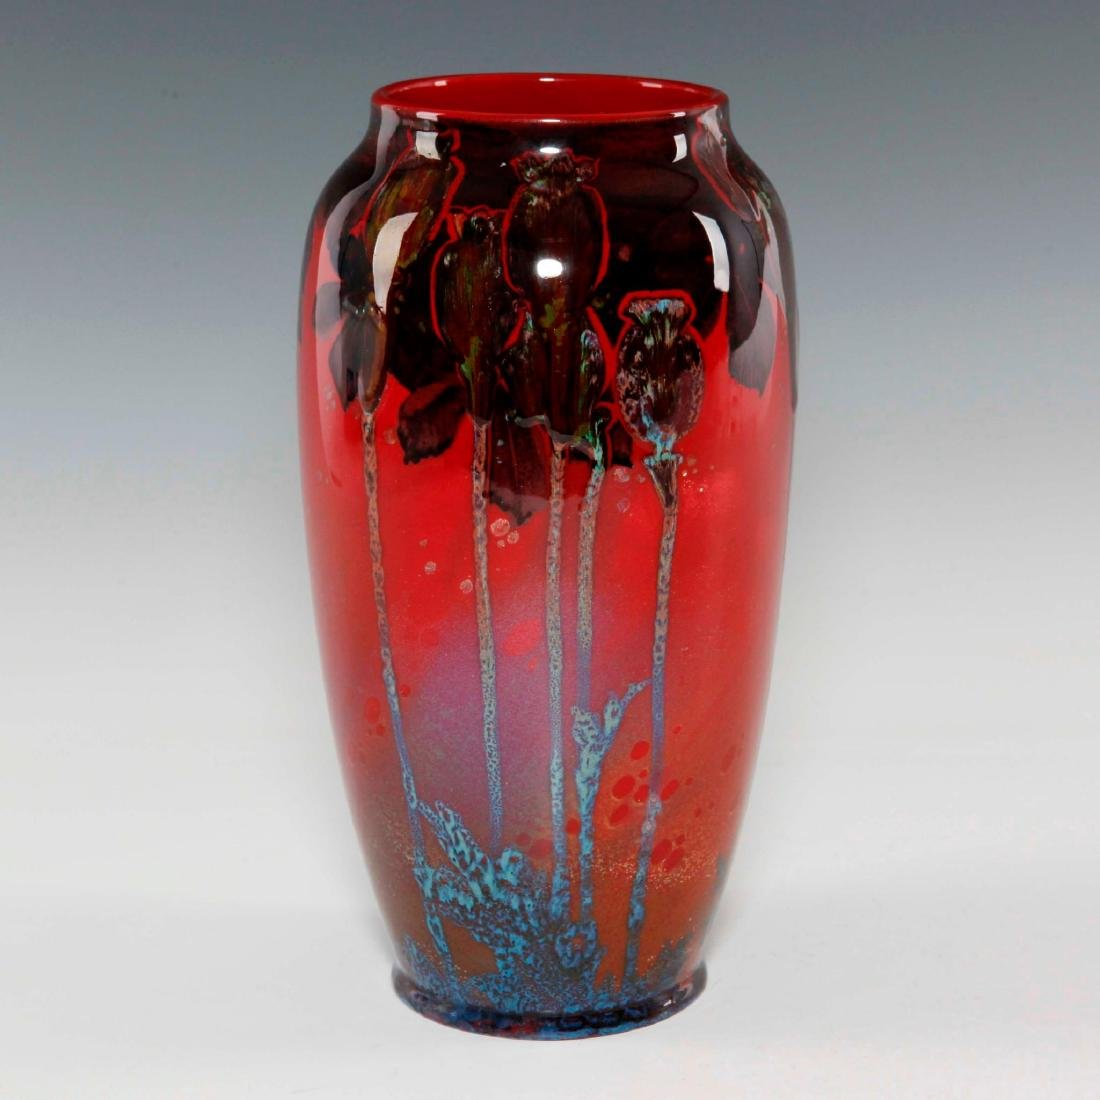 A ROYAL DOULTON SUNG WARE VASE WITH POPPIES